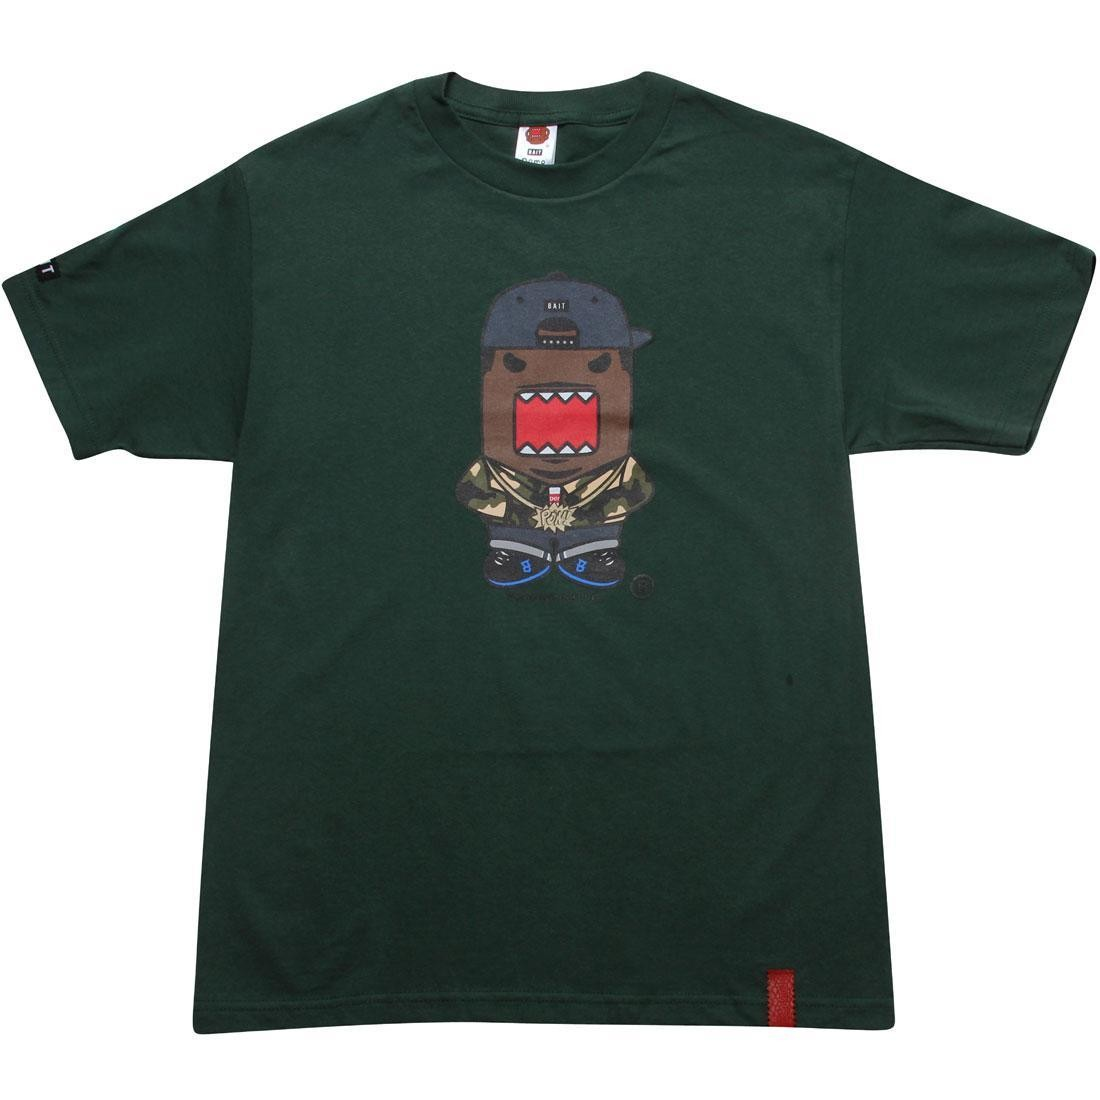 BAIT x Domo Rapper Tee (dark forest green)